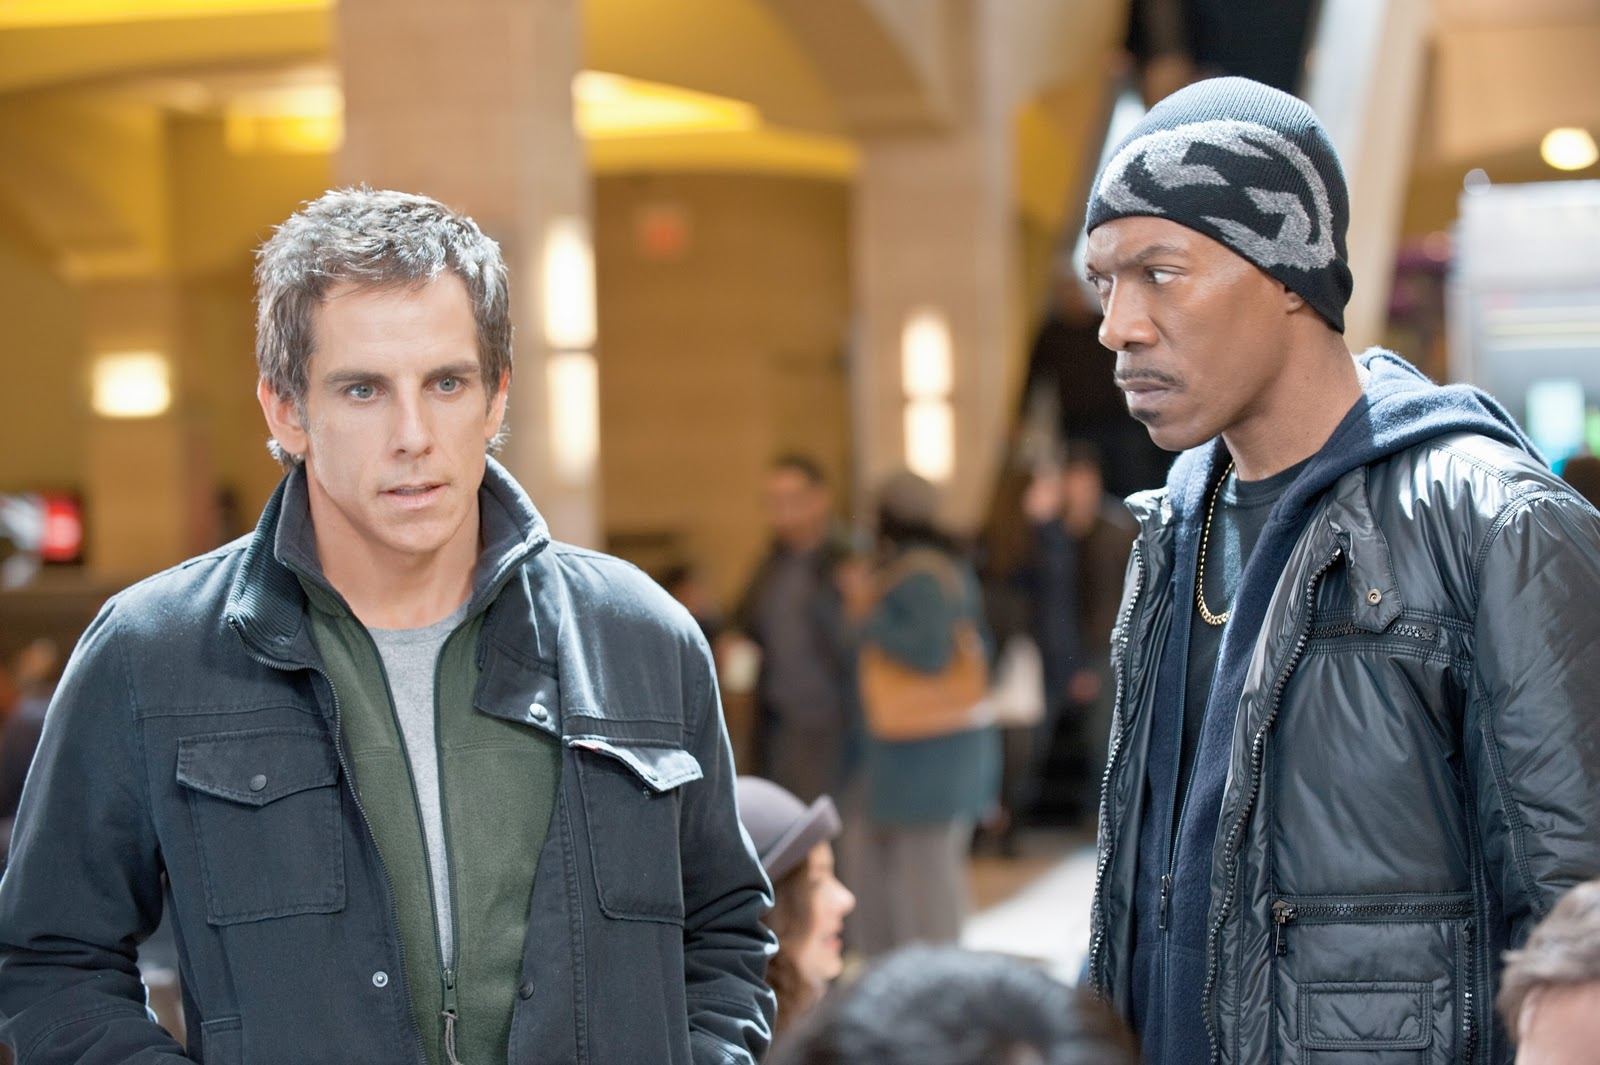 Maki at the Movies: Tower Heist